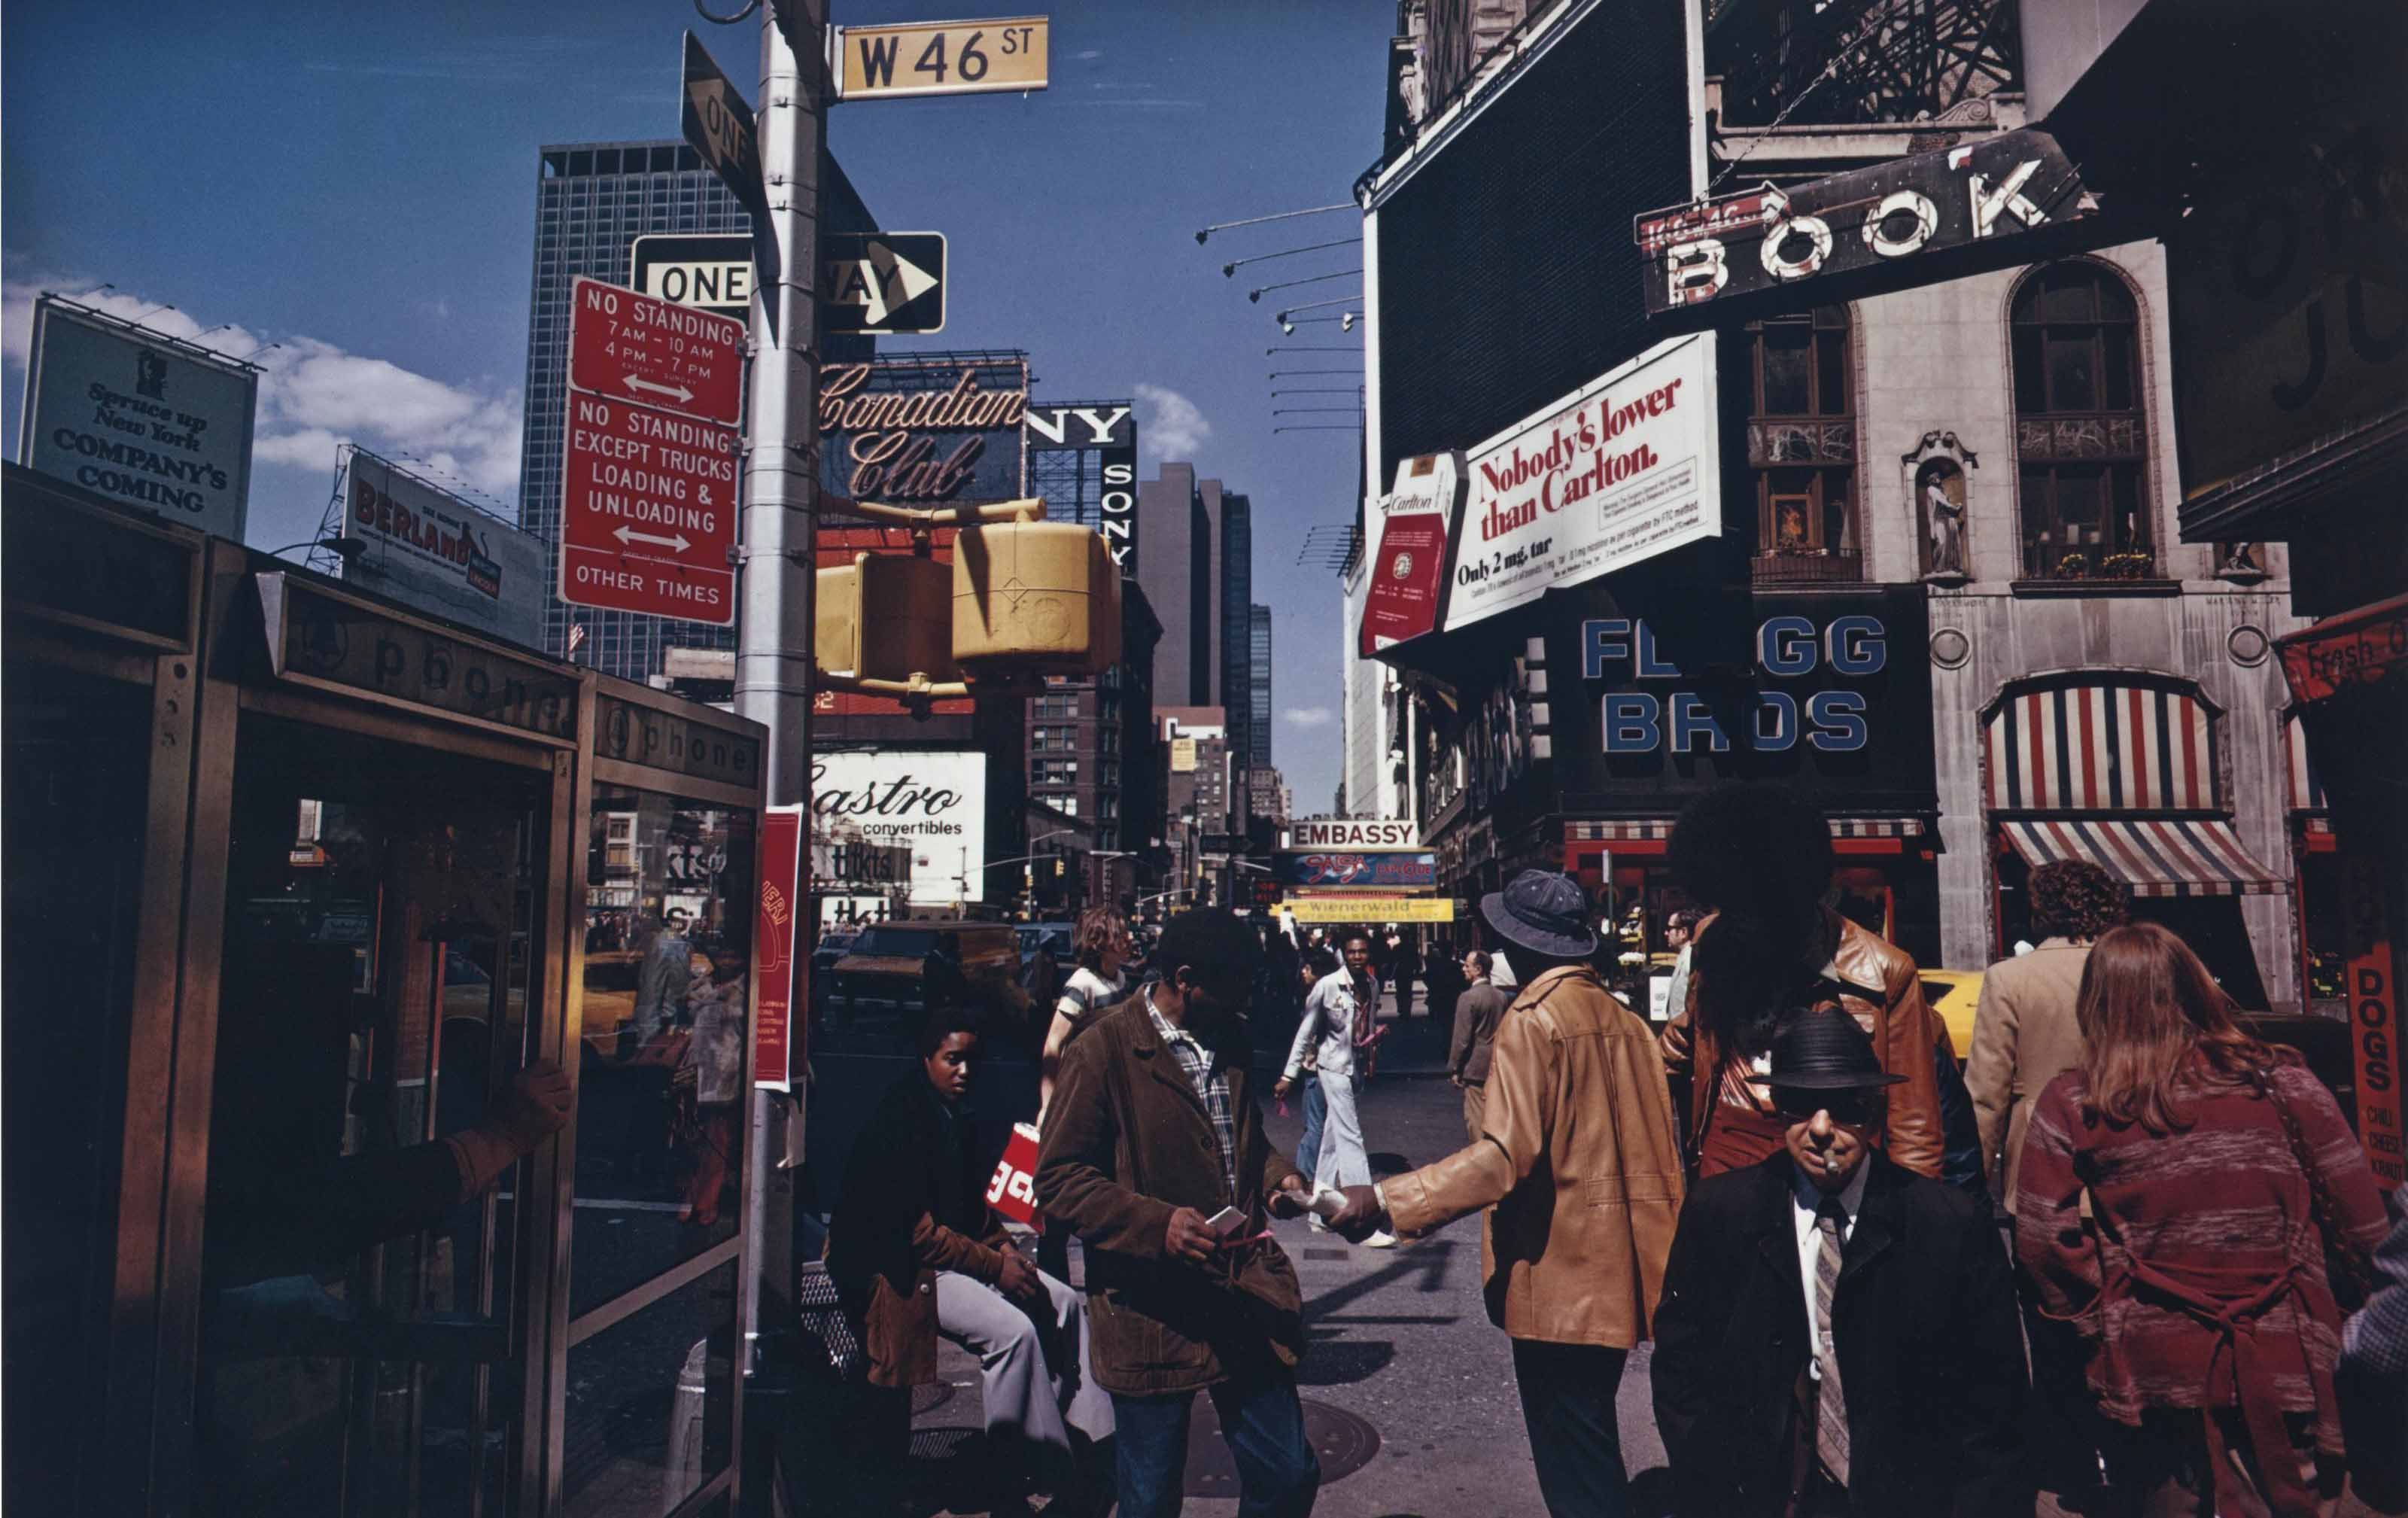 Broadway and 46th Street, New York City, 1976